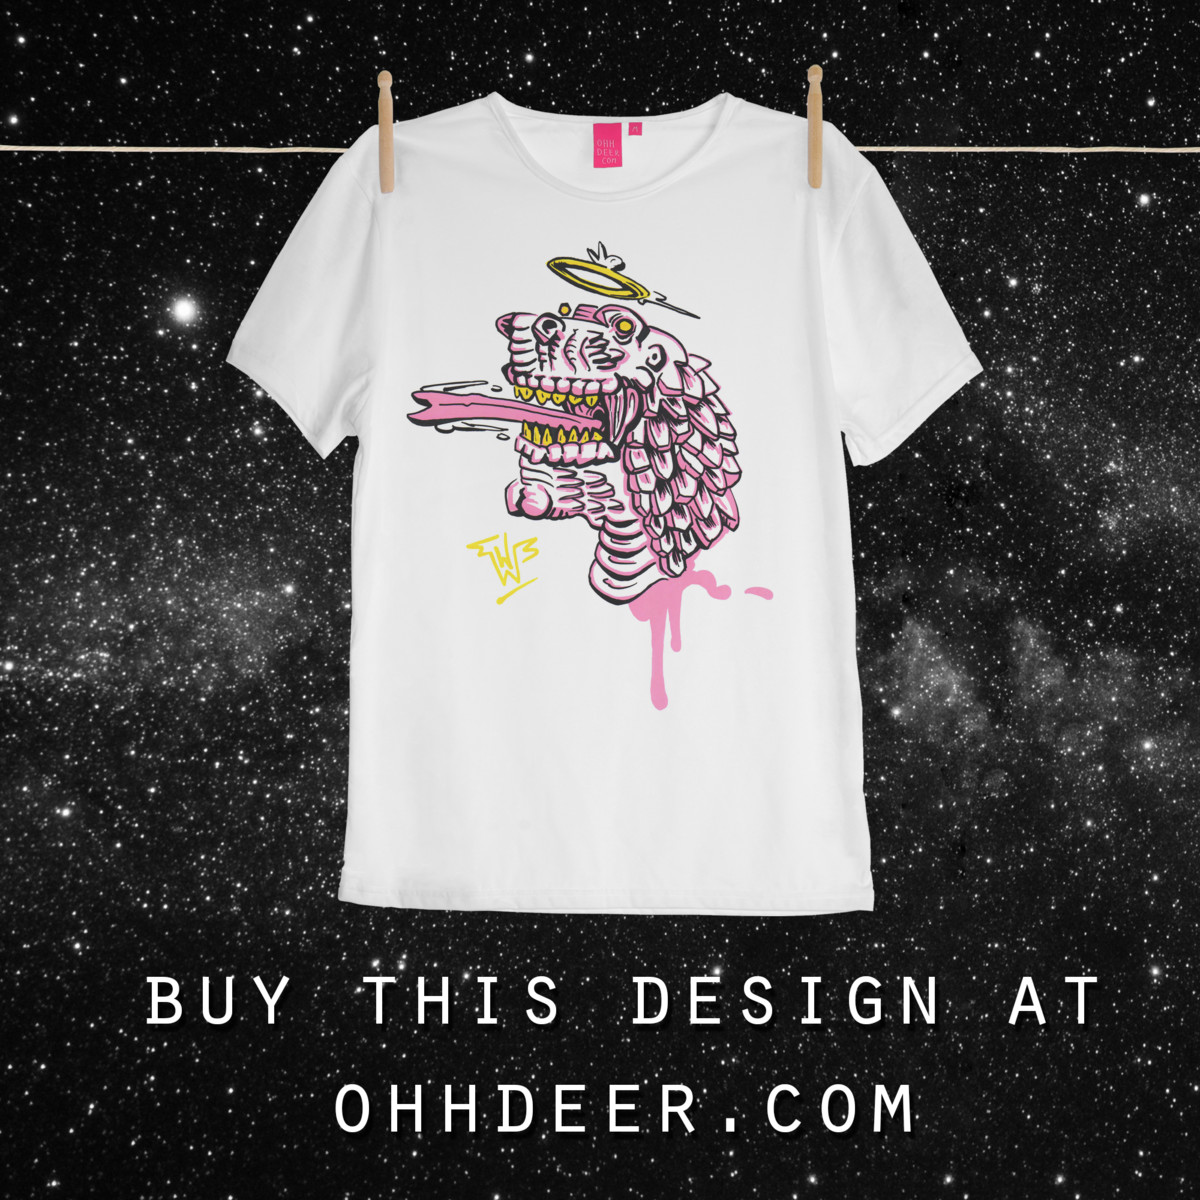 http://ohhdeer.com/competition/seam-there-done-that/11763/pinkosaur